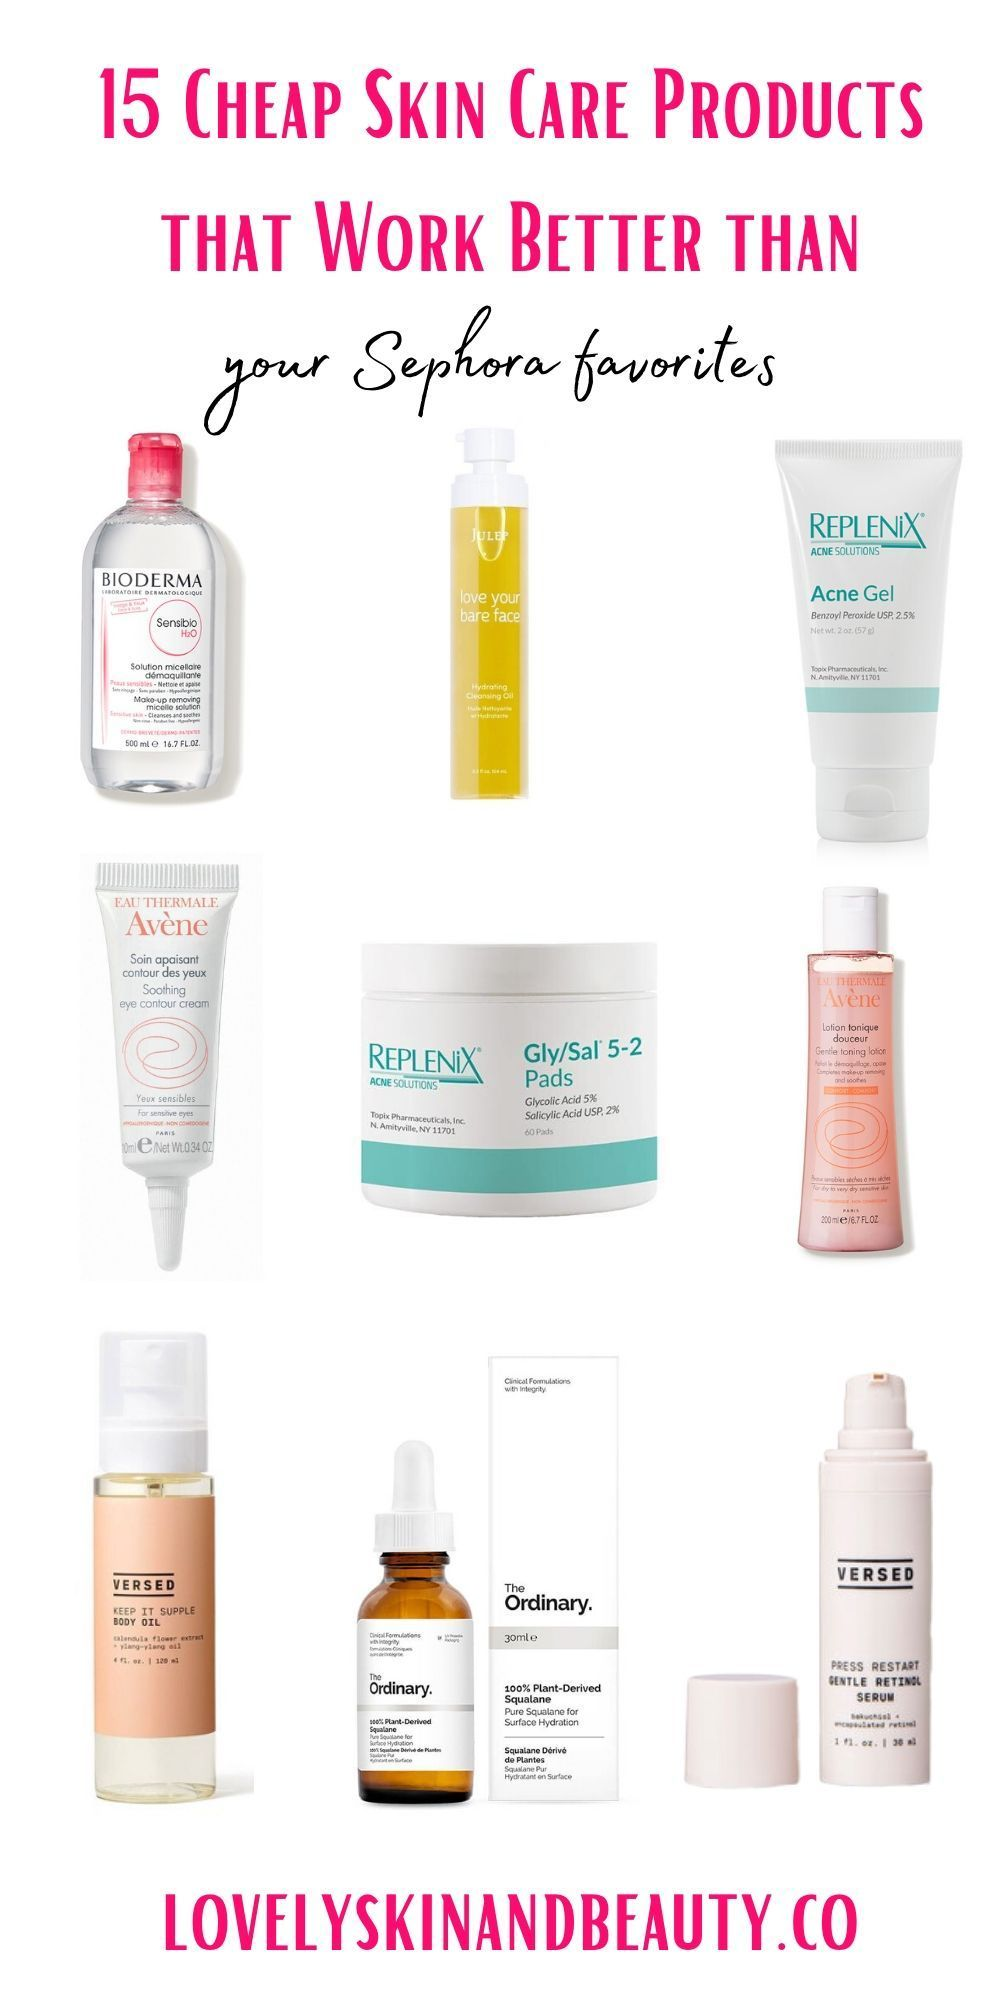 15 Cheap Skin Care Products That Work Just As Well As Luxury Brands In 2020 Cheap Skin Care Routine Cheap Skin Care Products Affordable Skin Care